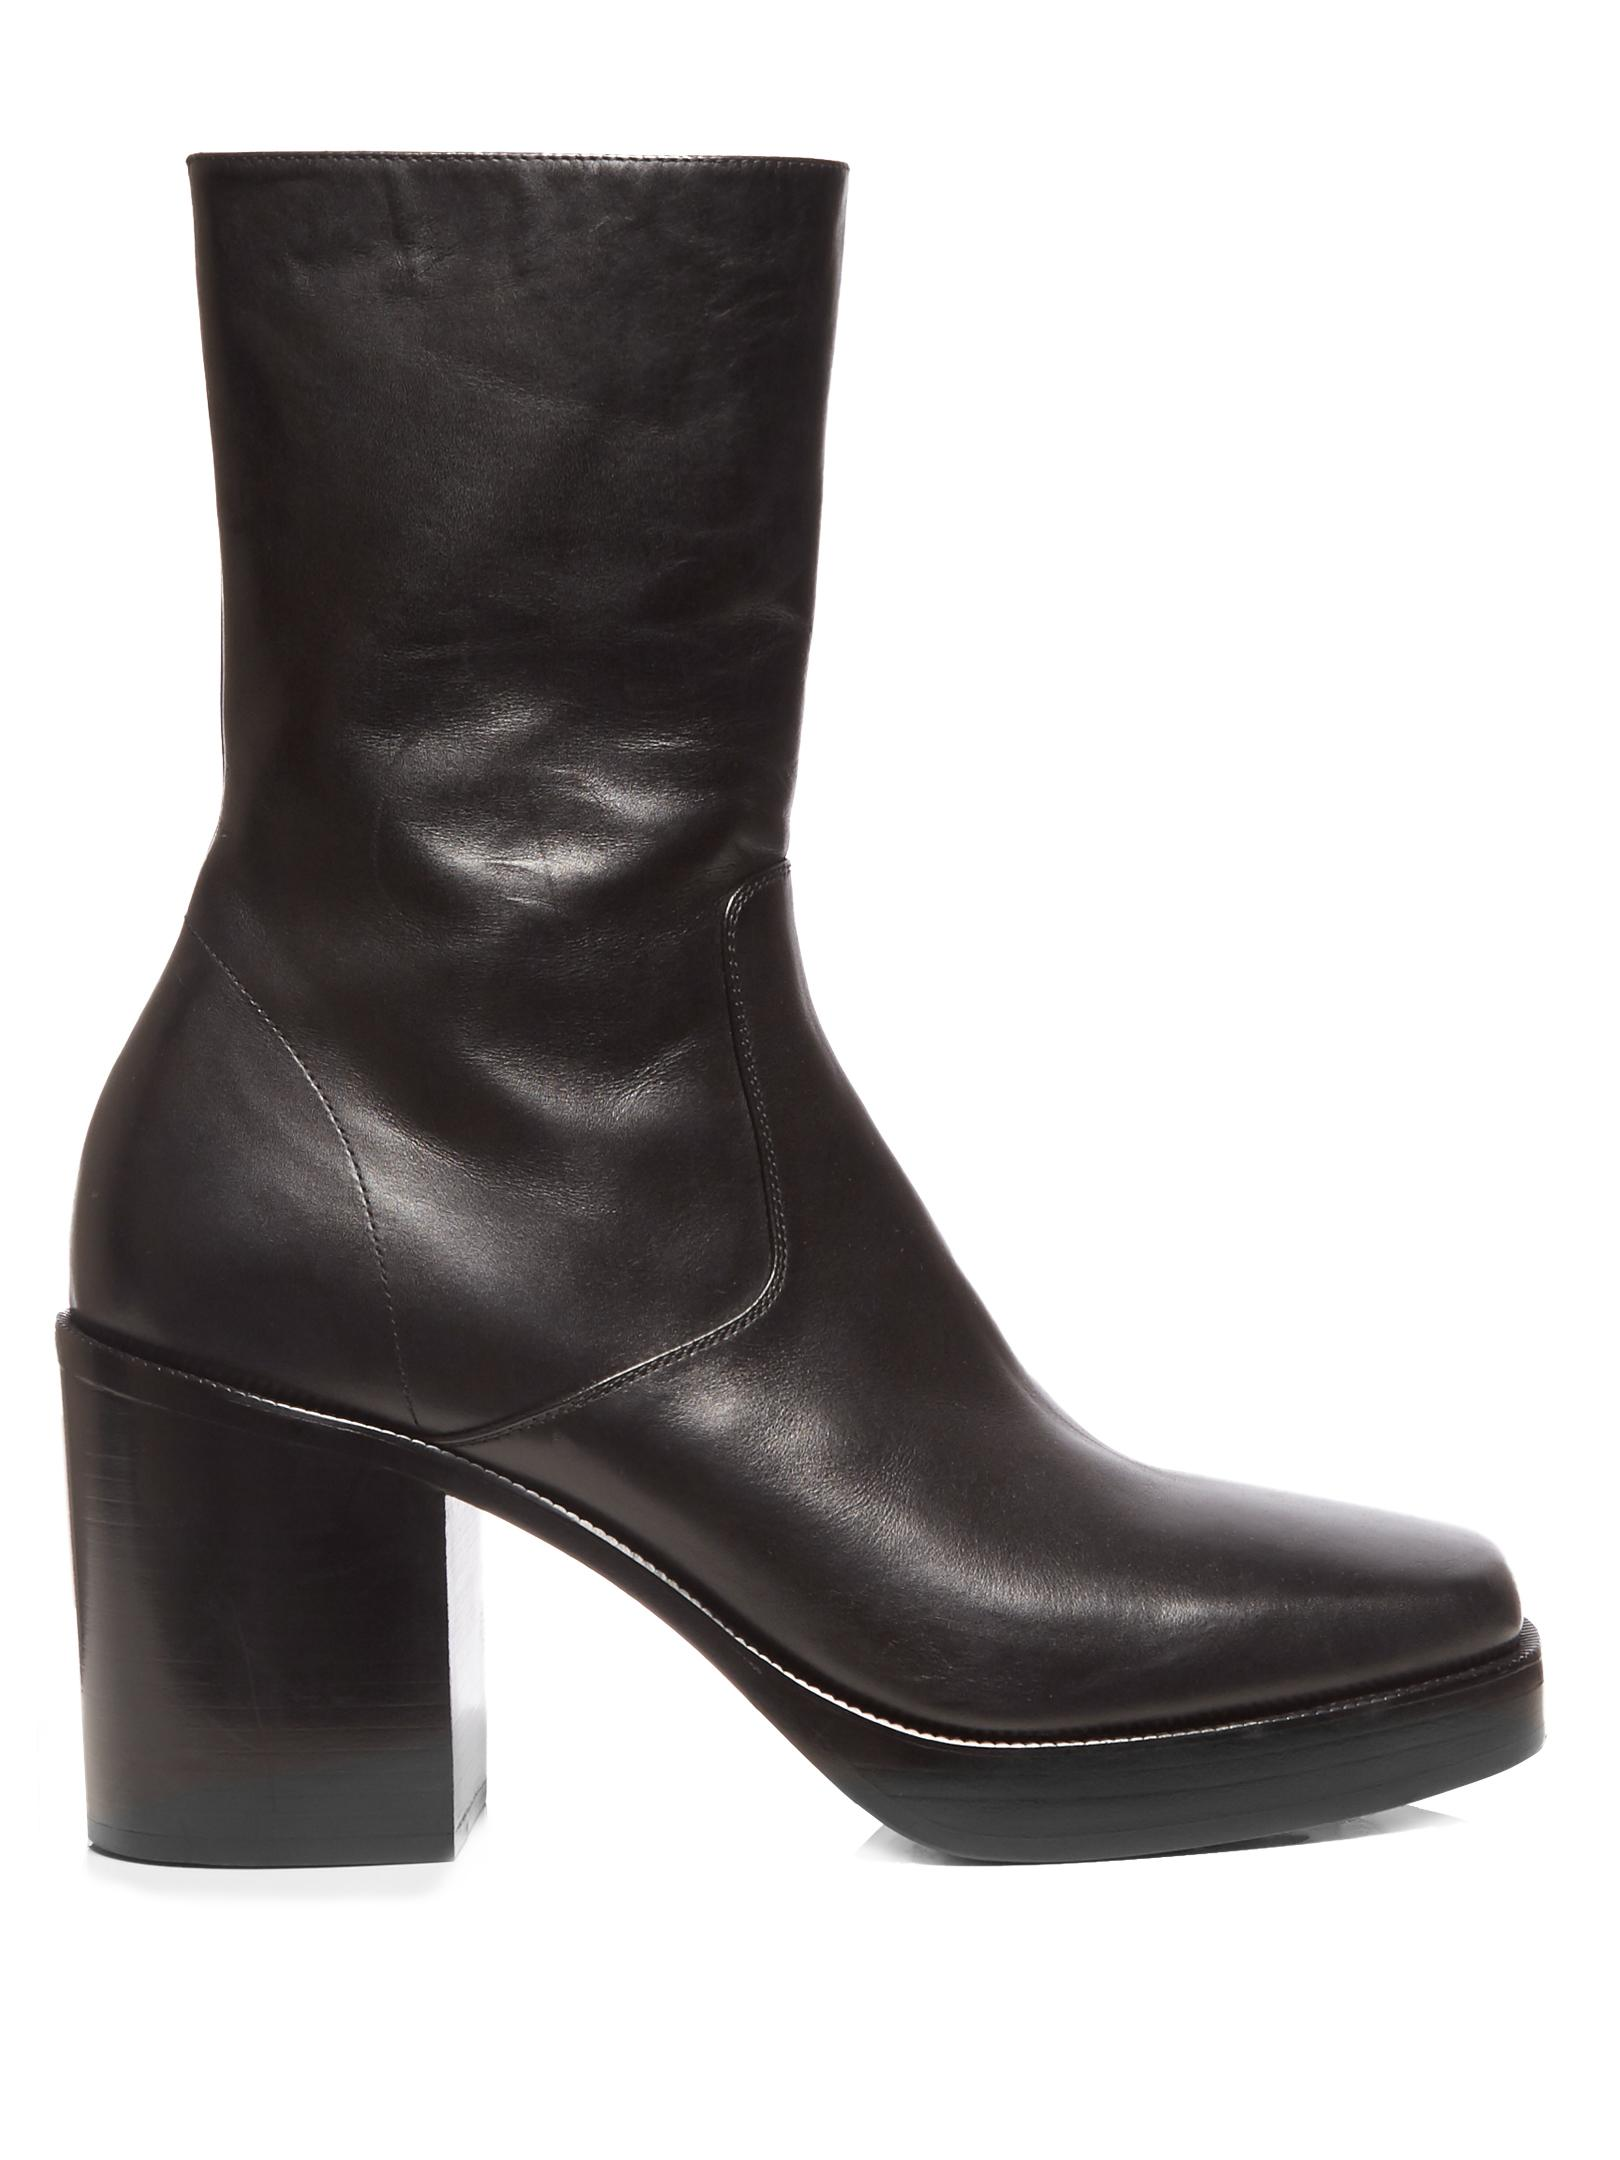 Balenciaga Leather Platform Boots In Black For Men Lyst